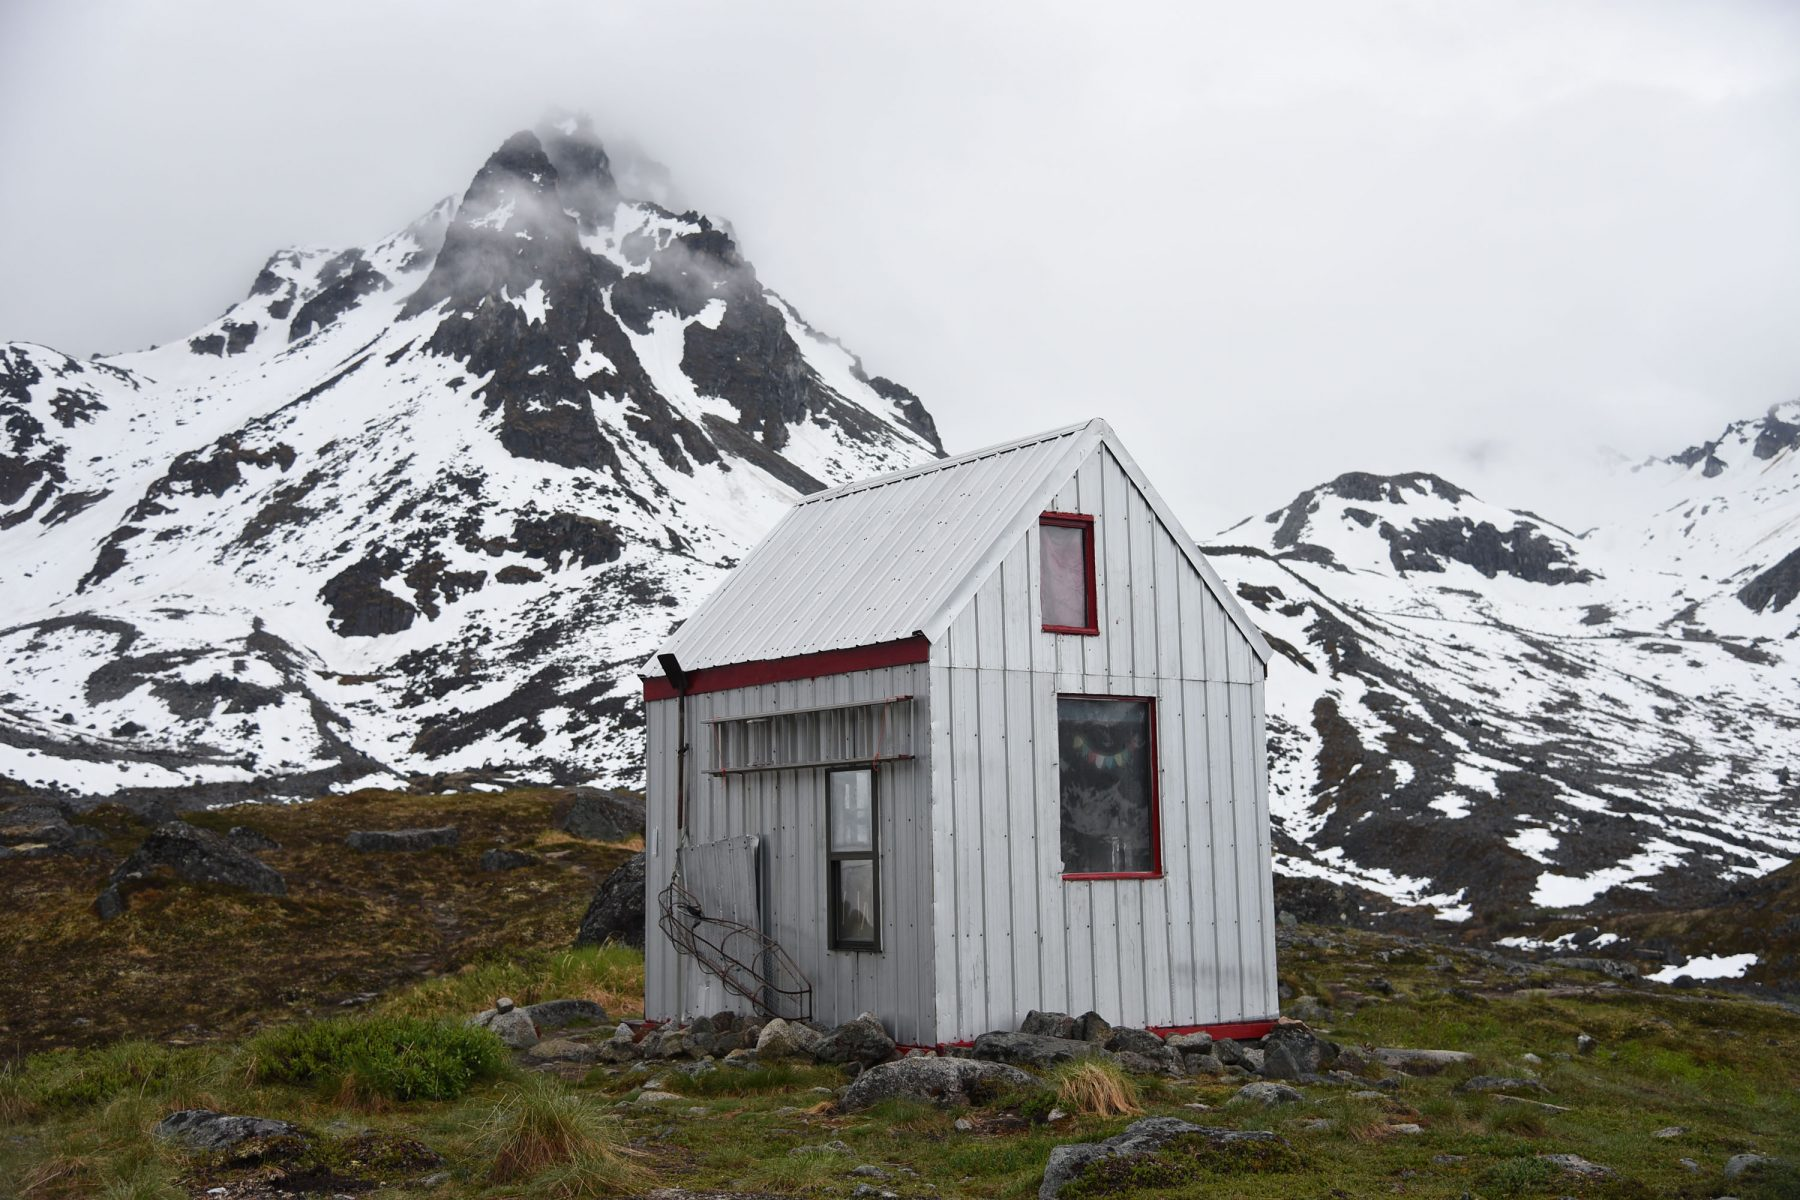 The Bomber Hut, the namesake hut of the Bomber Traverse